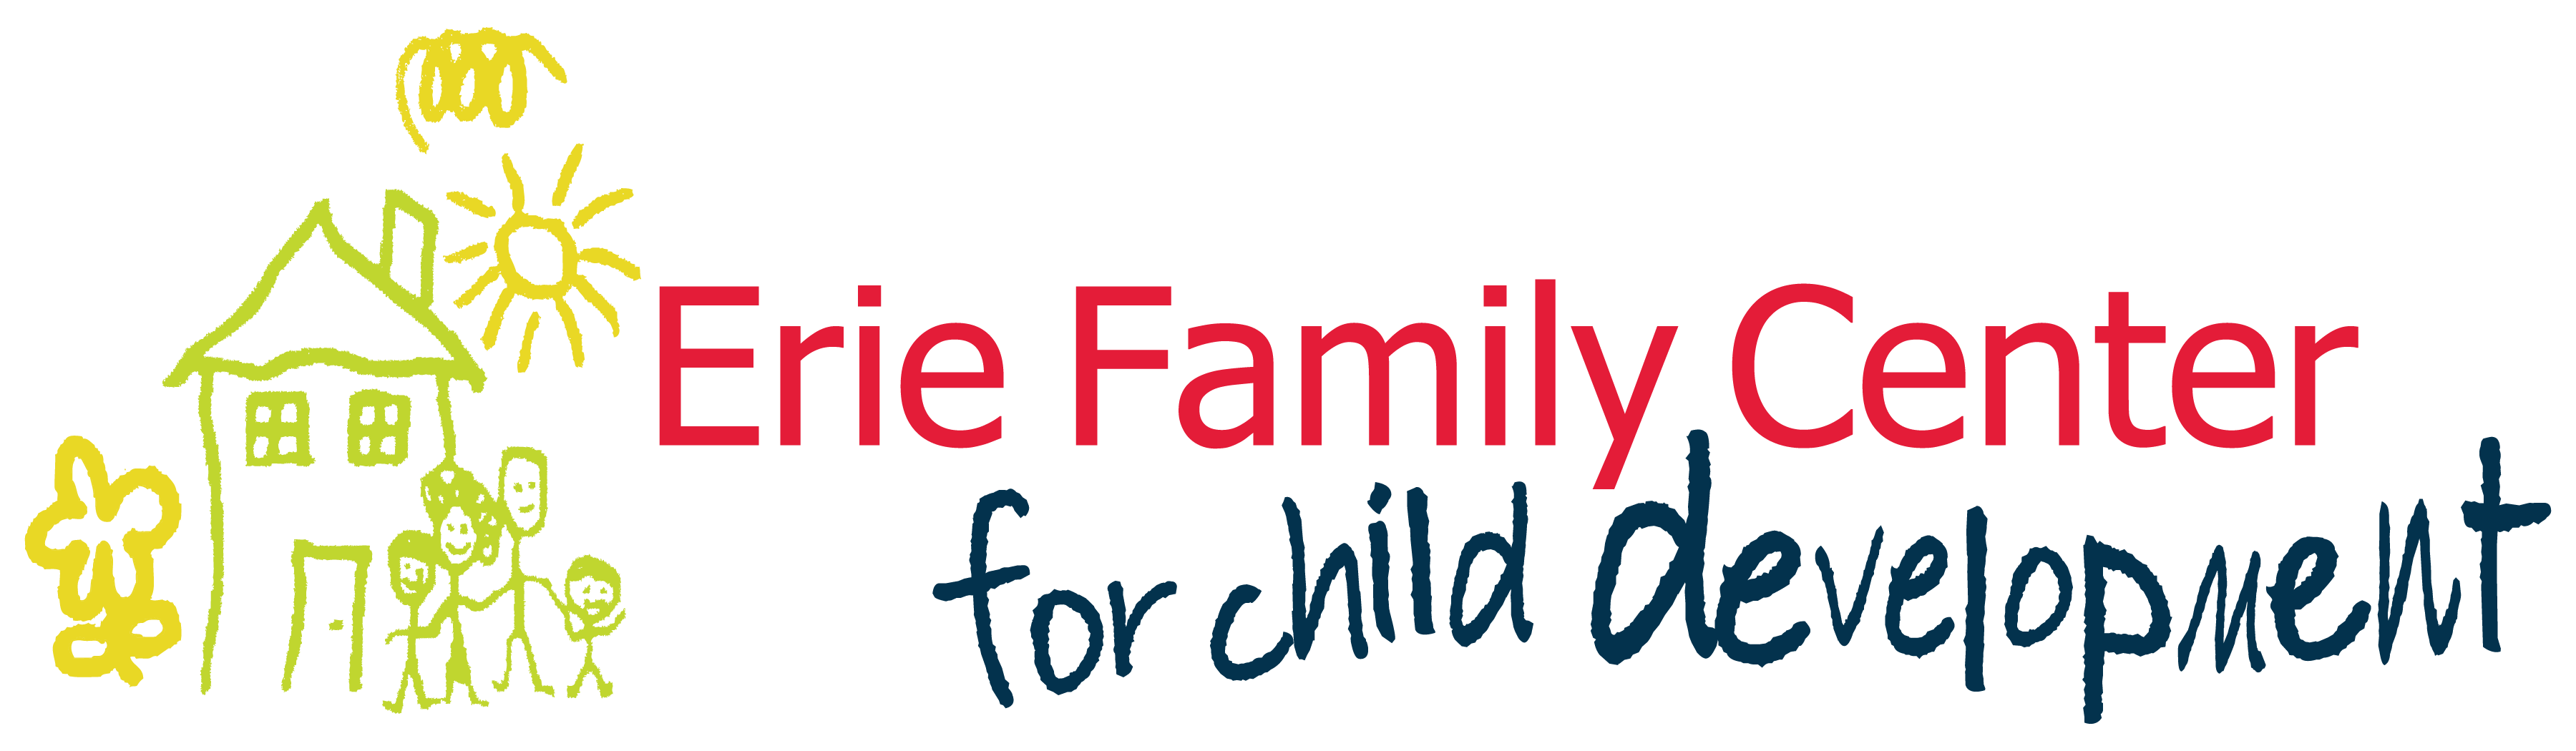 Erie Family Center for Child Development